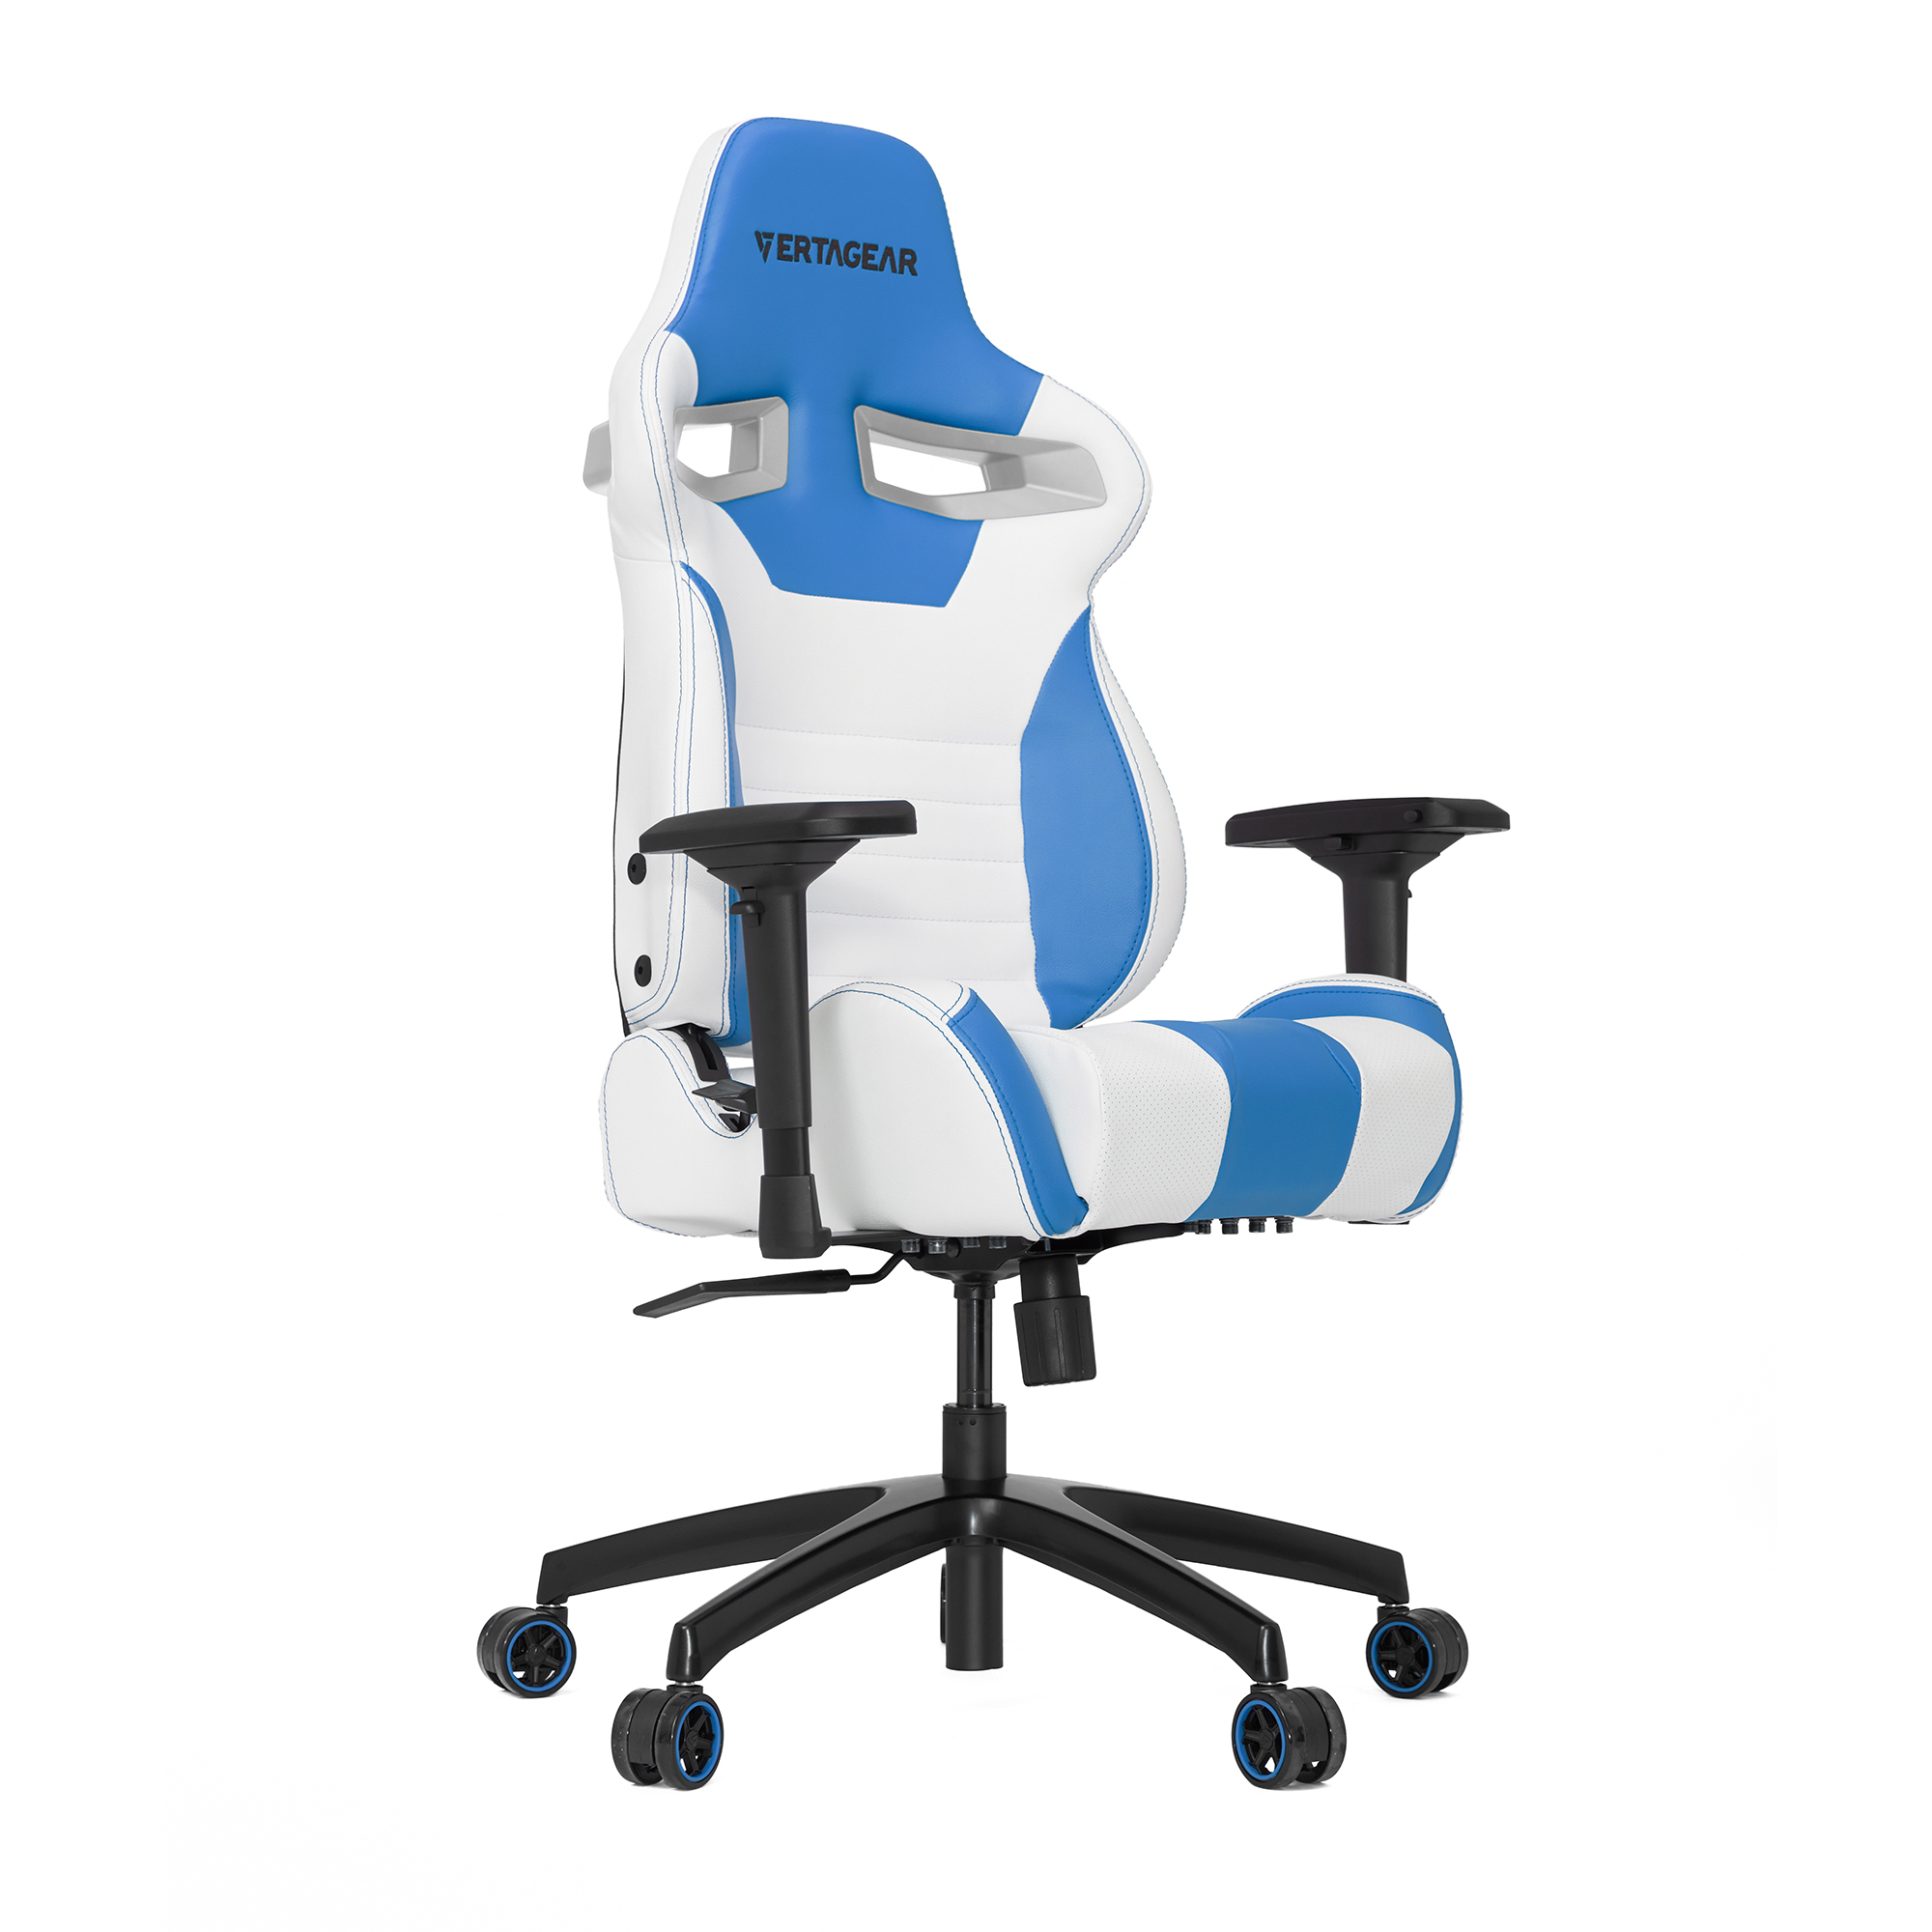 Vertagear S-Line SL4000 Racing Game Chair Computer Gaming Chair - White/Blue